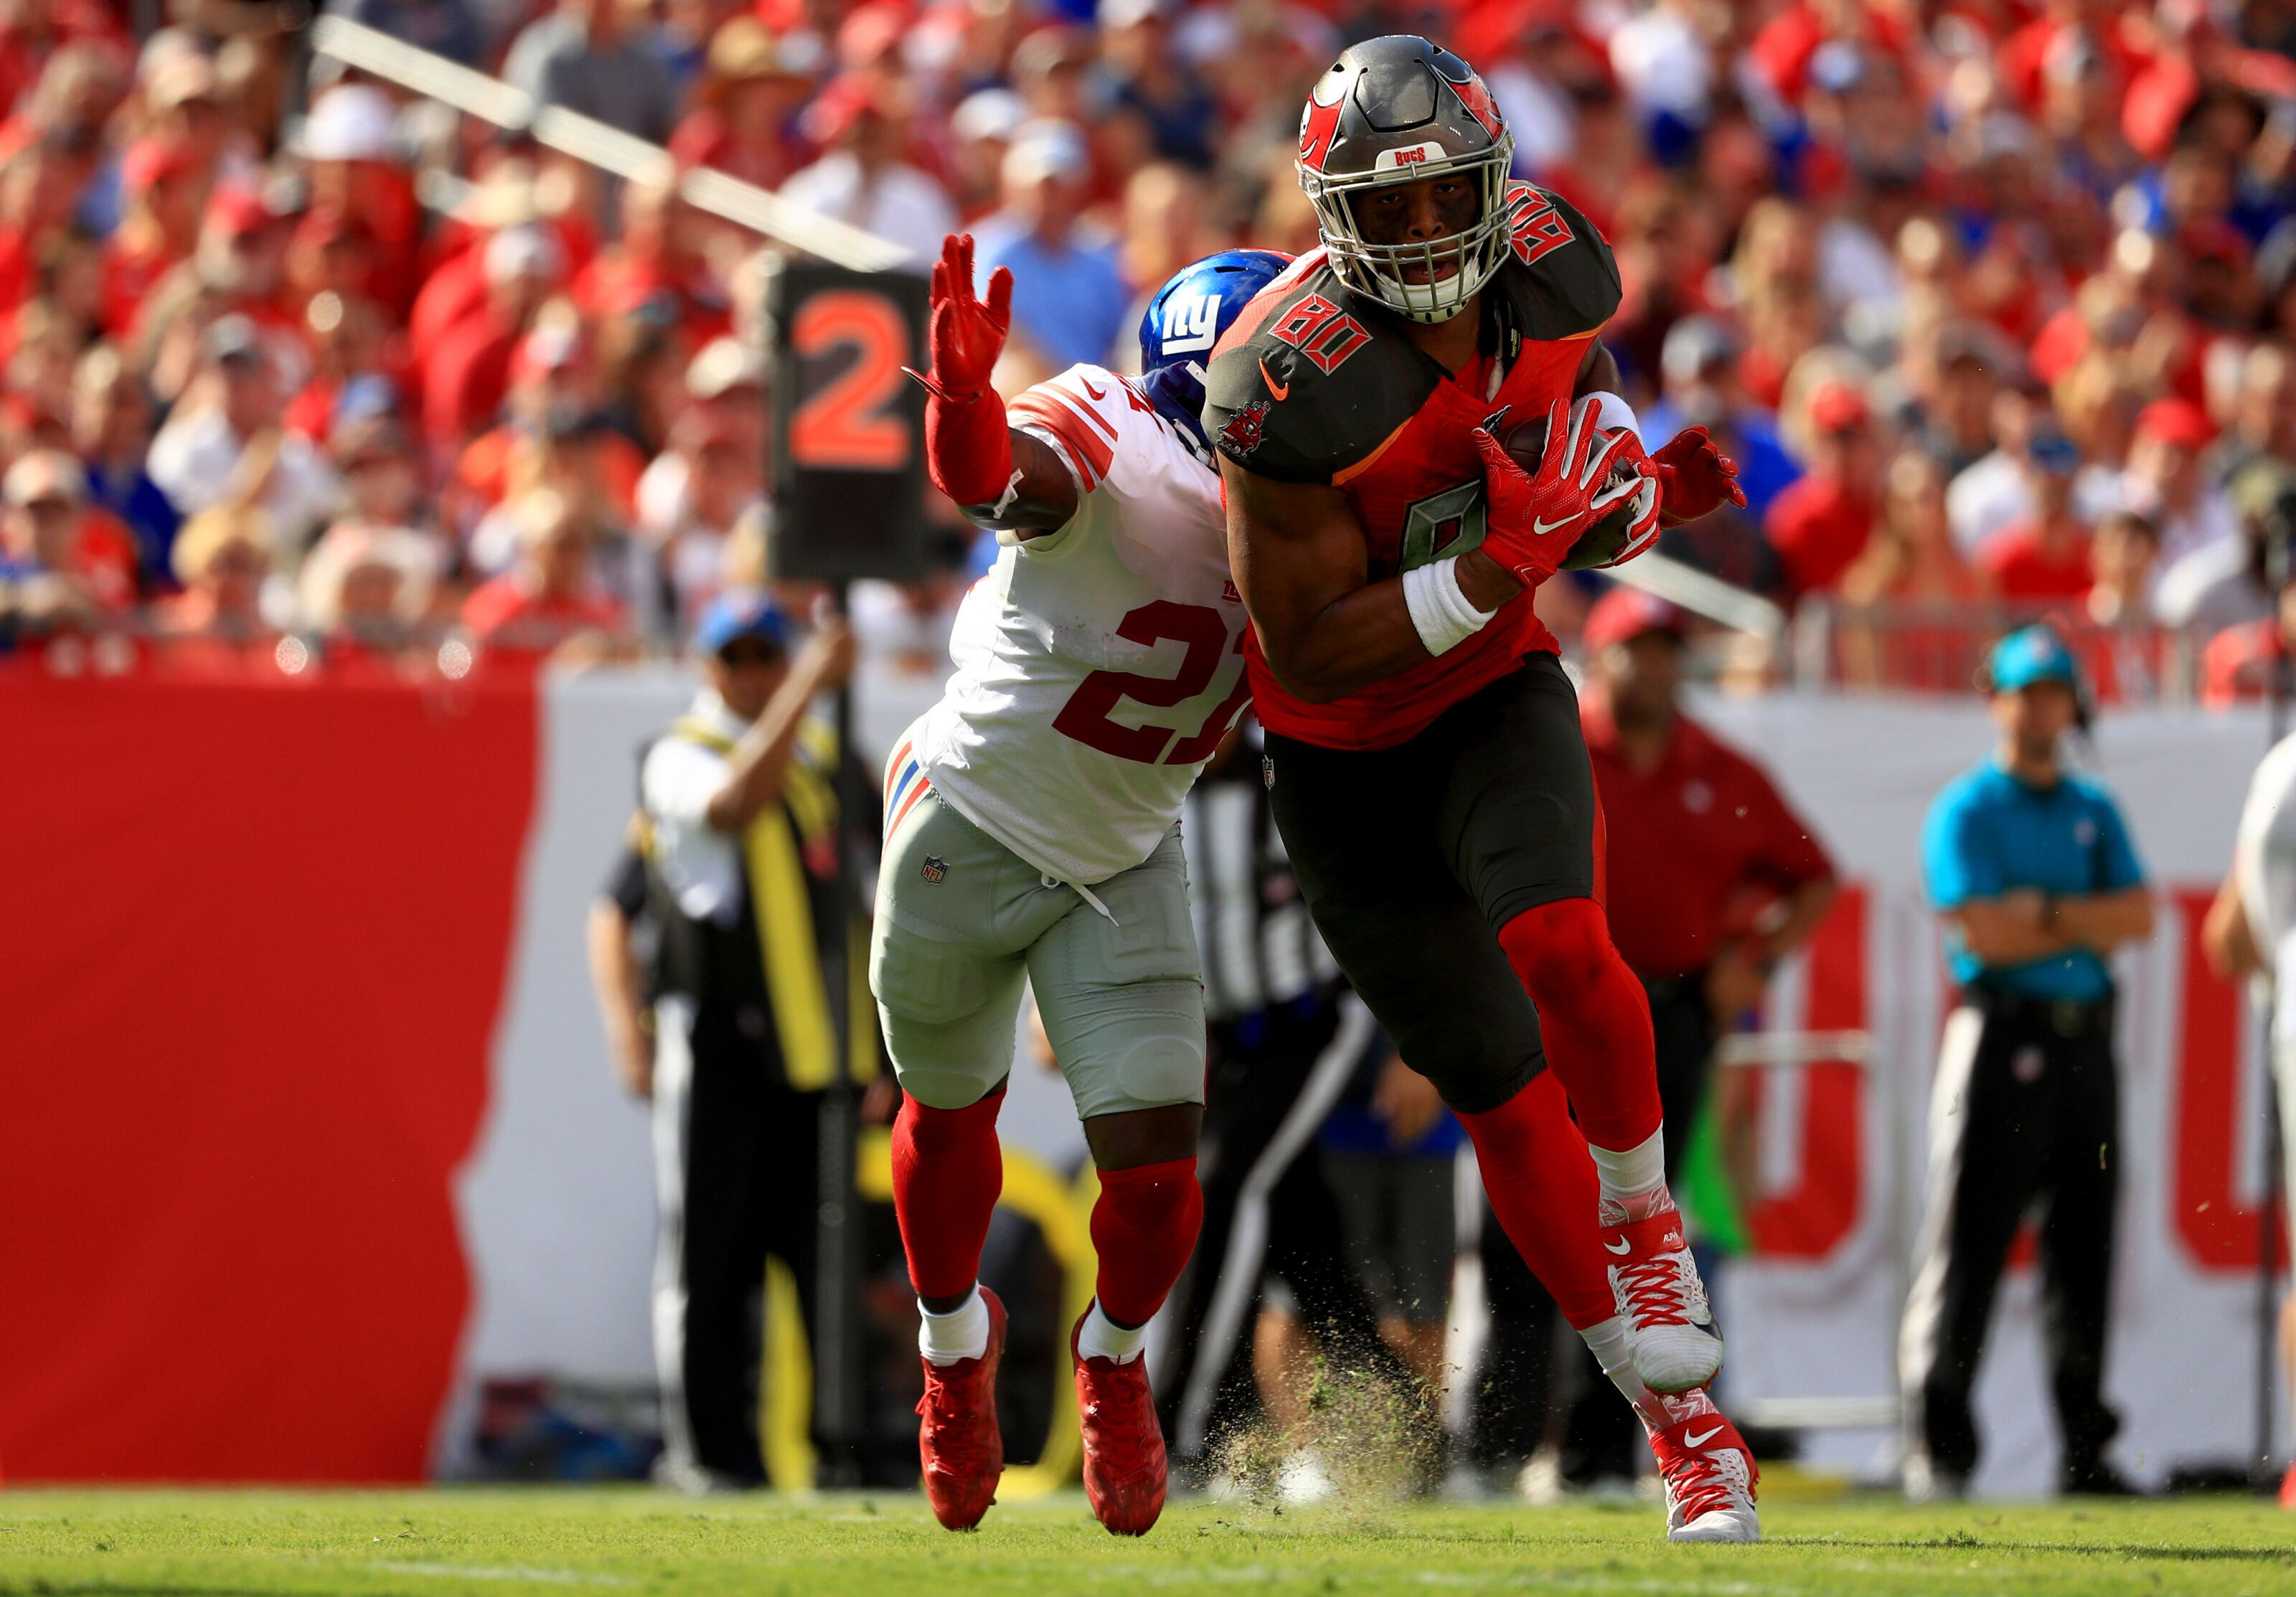 Trading O.J. Howard: Is it an option for Buccaneers?